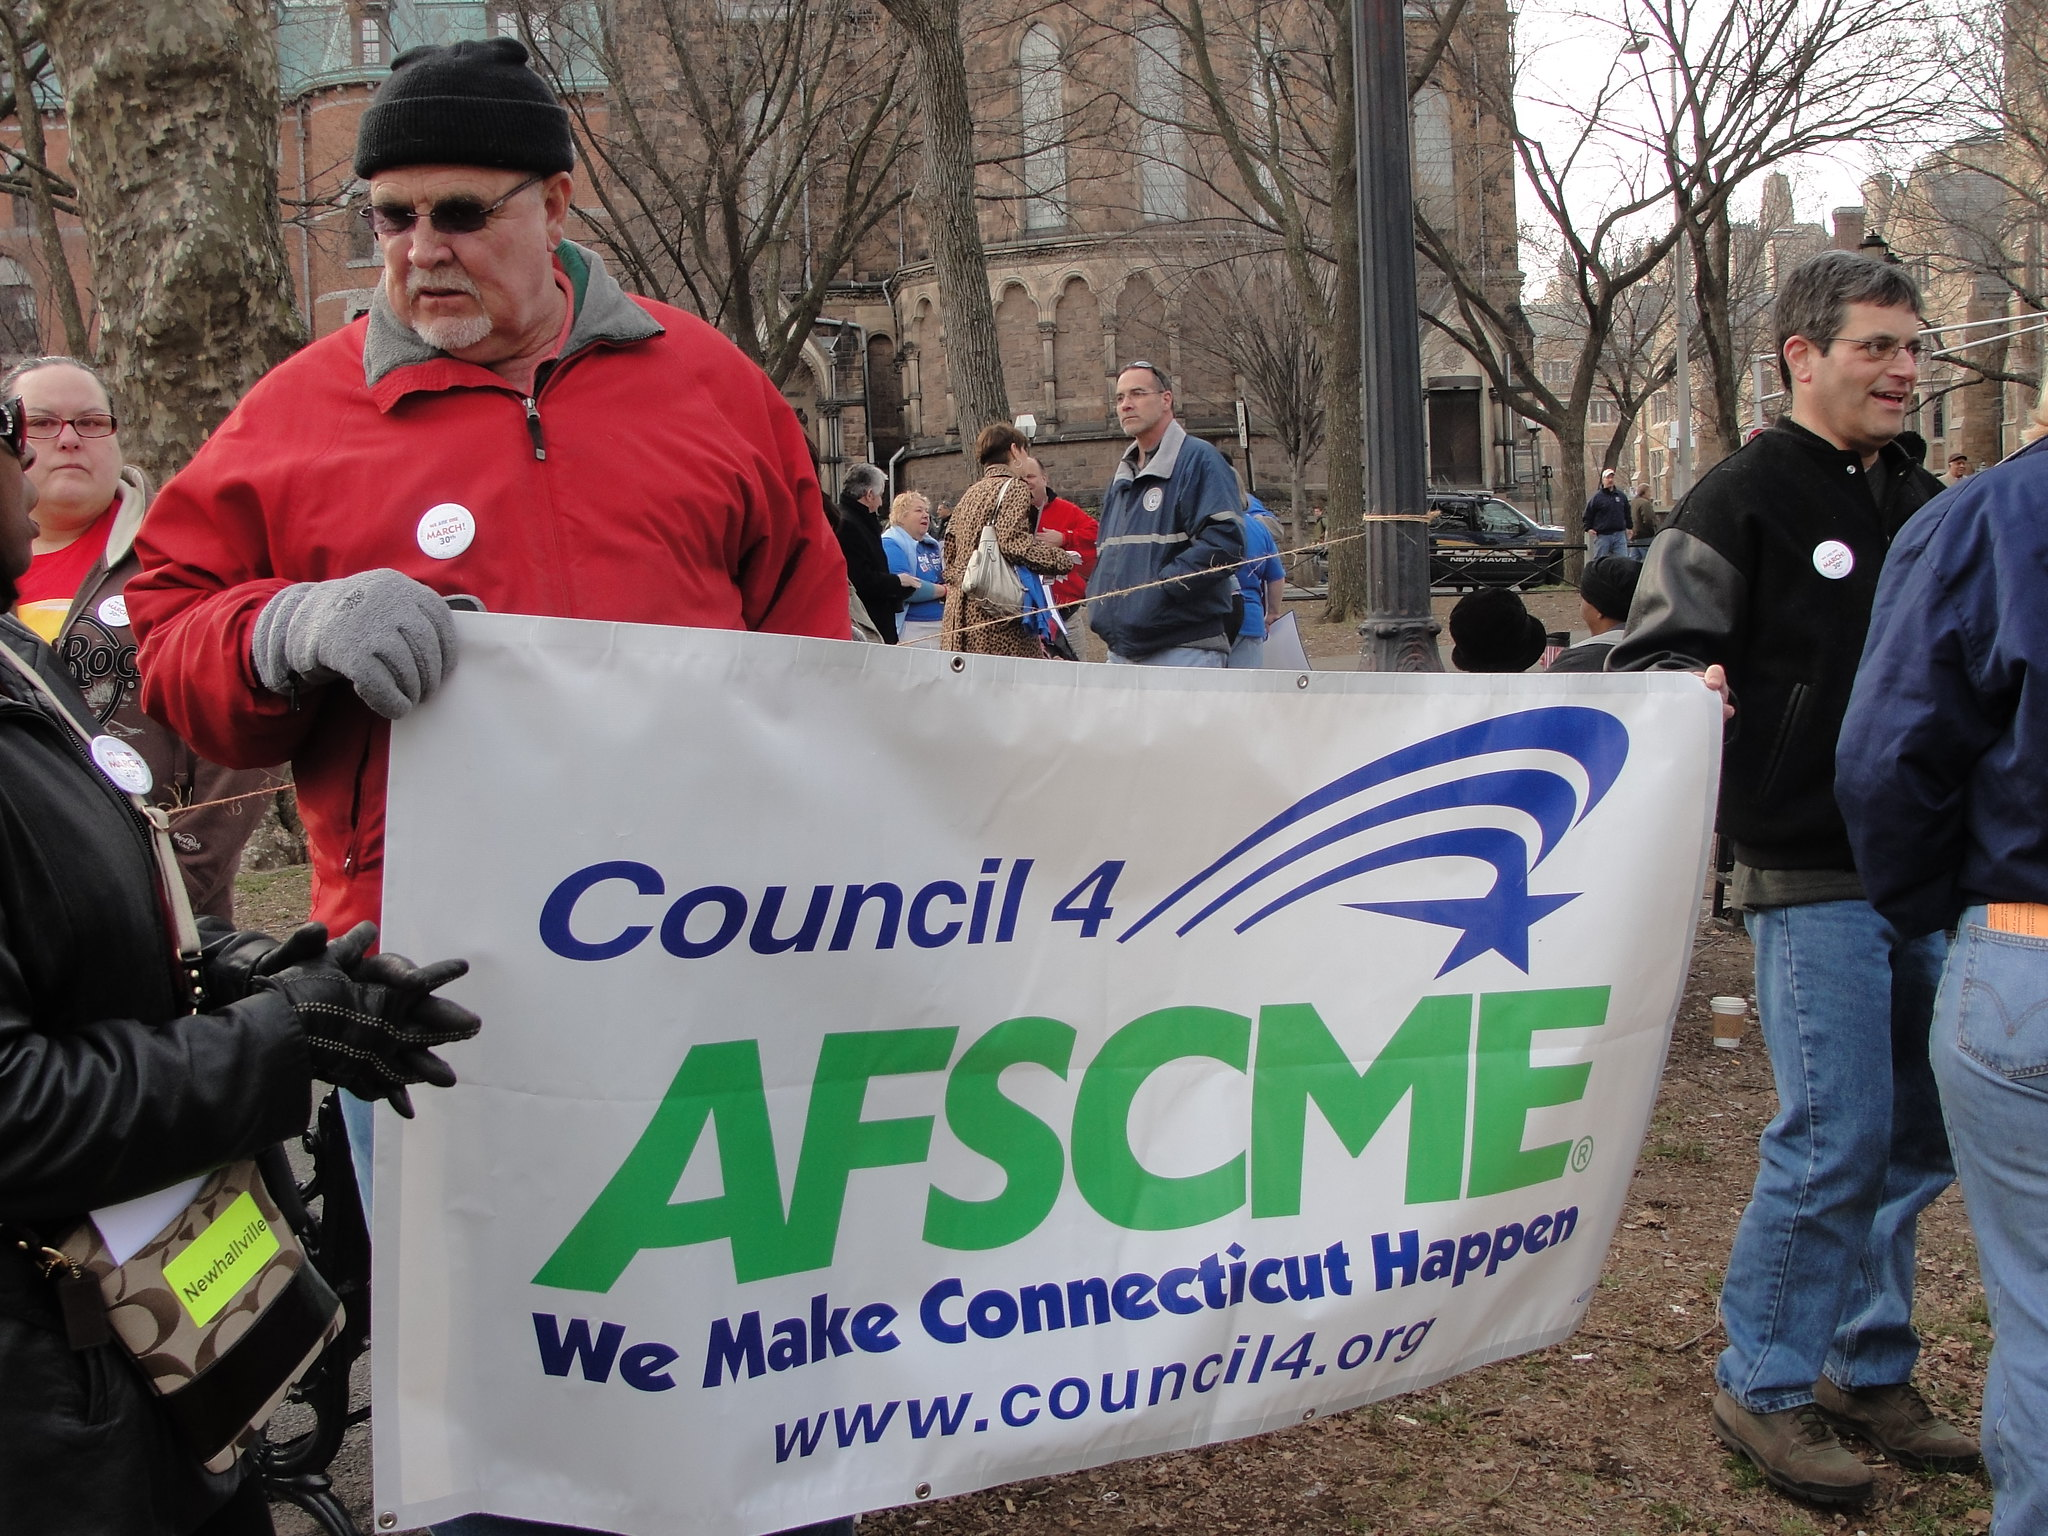 New Haven Local 884 union president canned by AFSMCE International